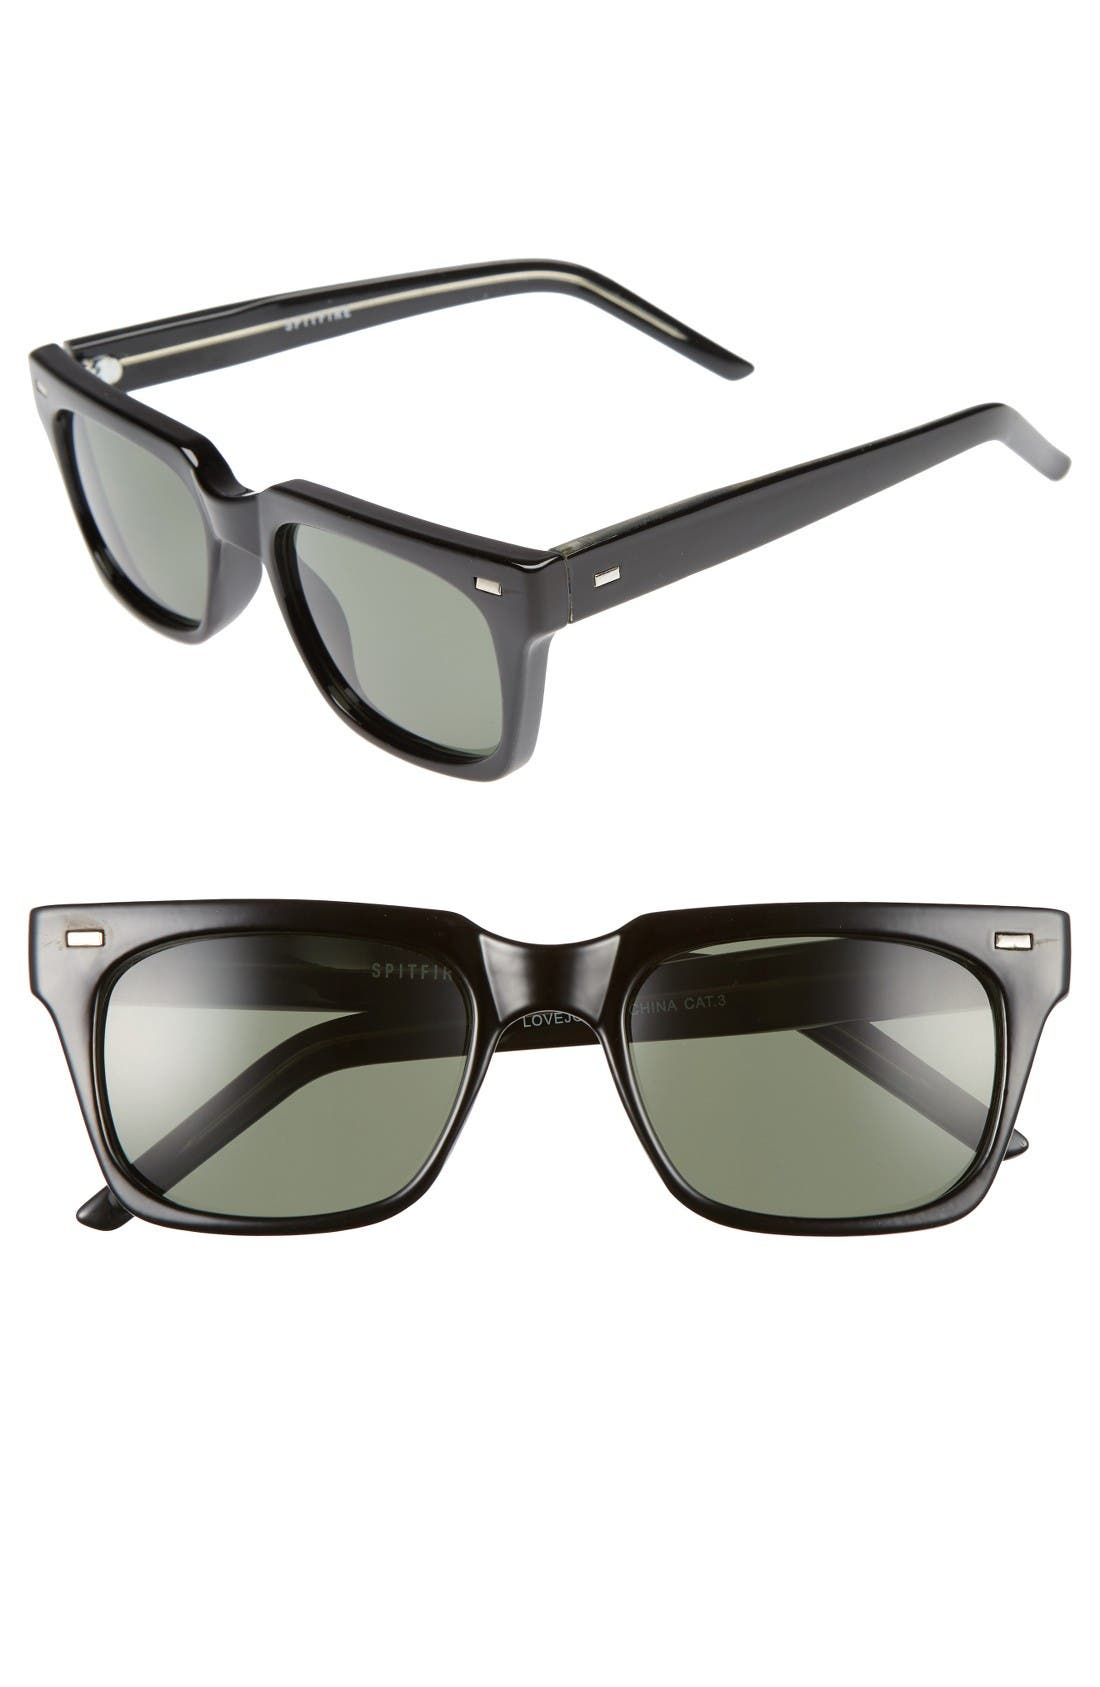 Spitfire Lovejoy Rectangular Sunglasses